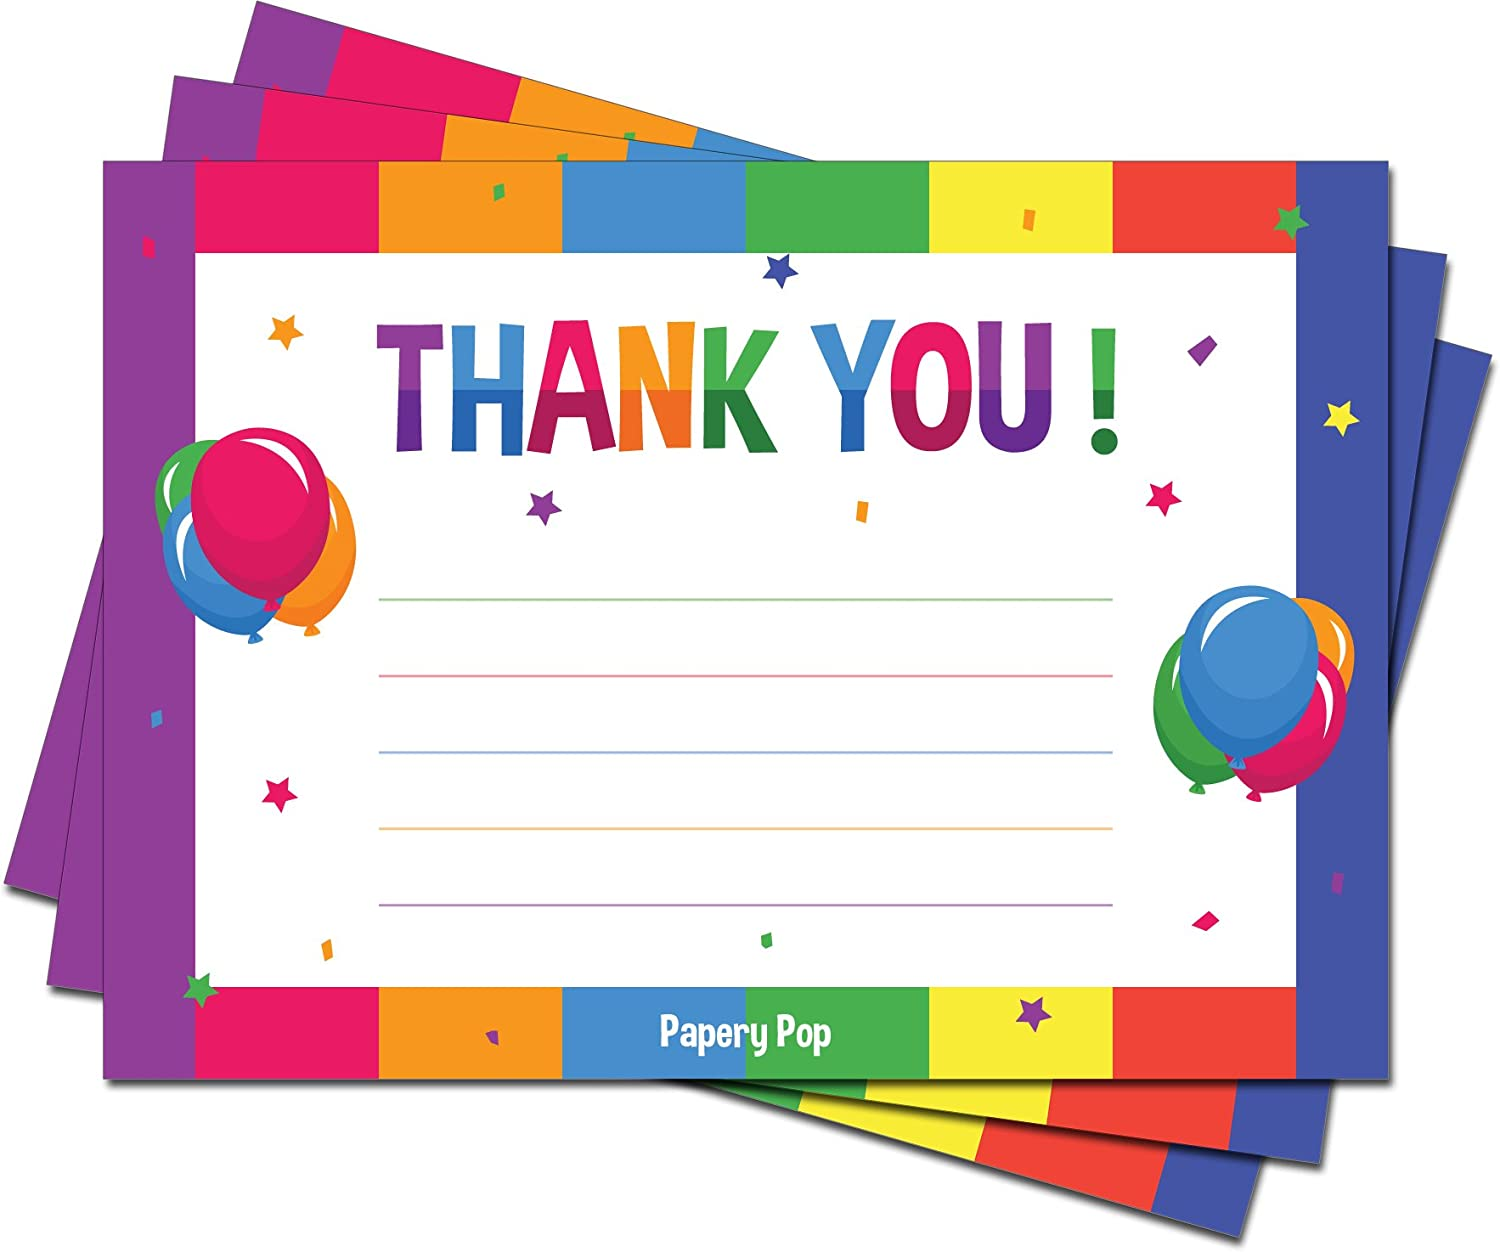 15 Count Kids Thank You Cards with Envelopes Kids Birthday Thank You Notes